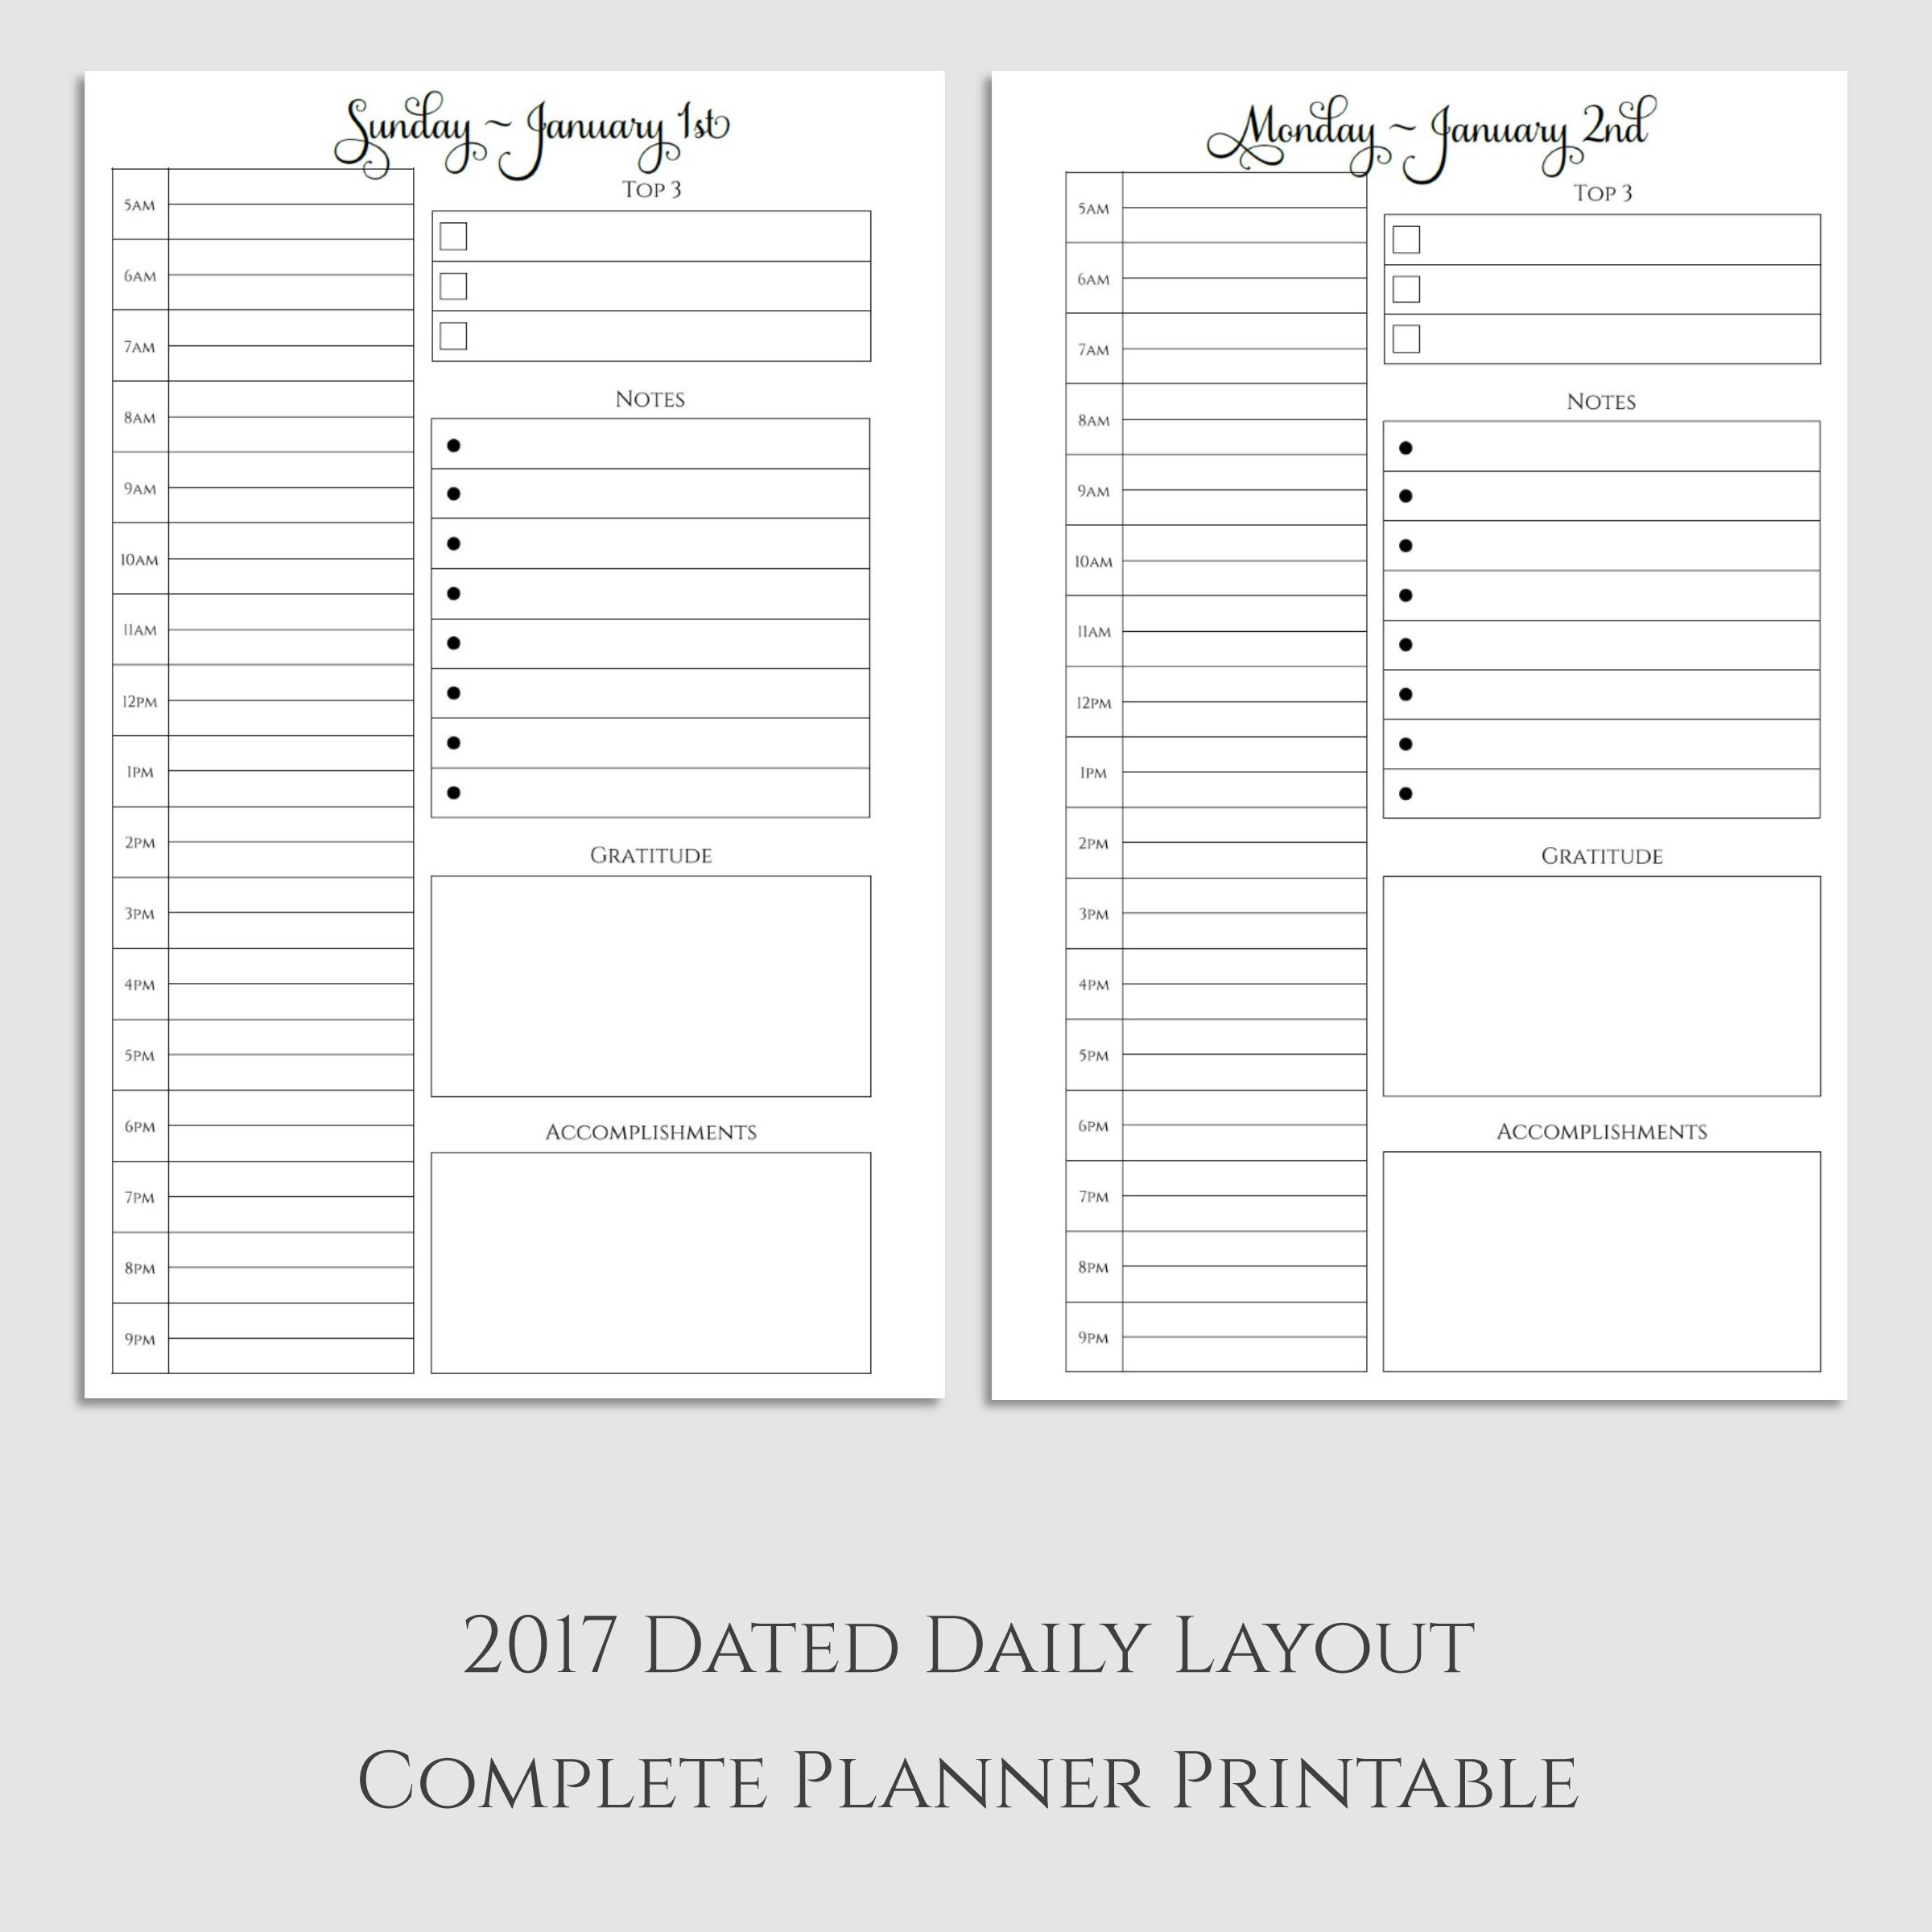 Complete 2017 Daily Planner Printable with Gratitude ...